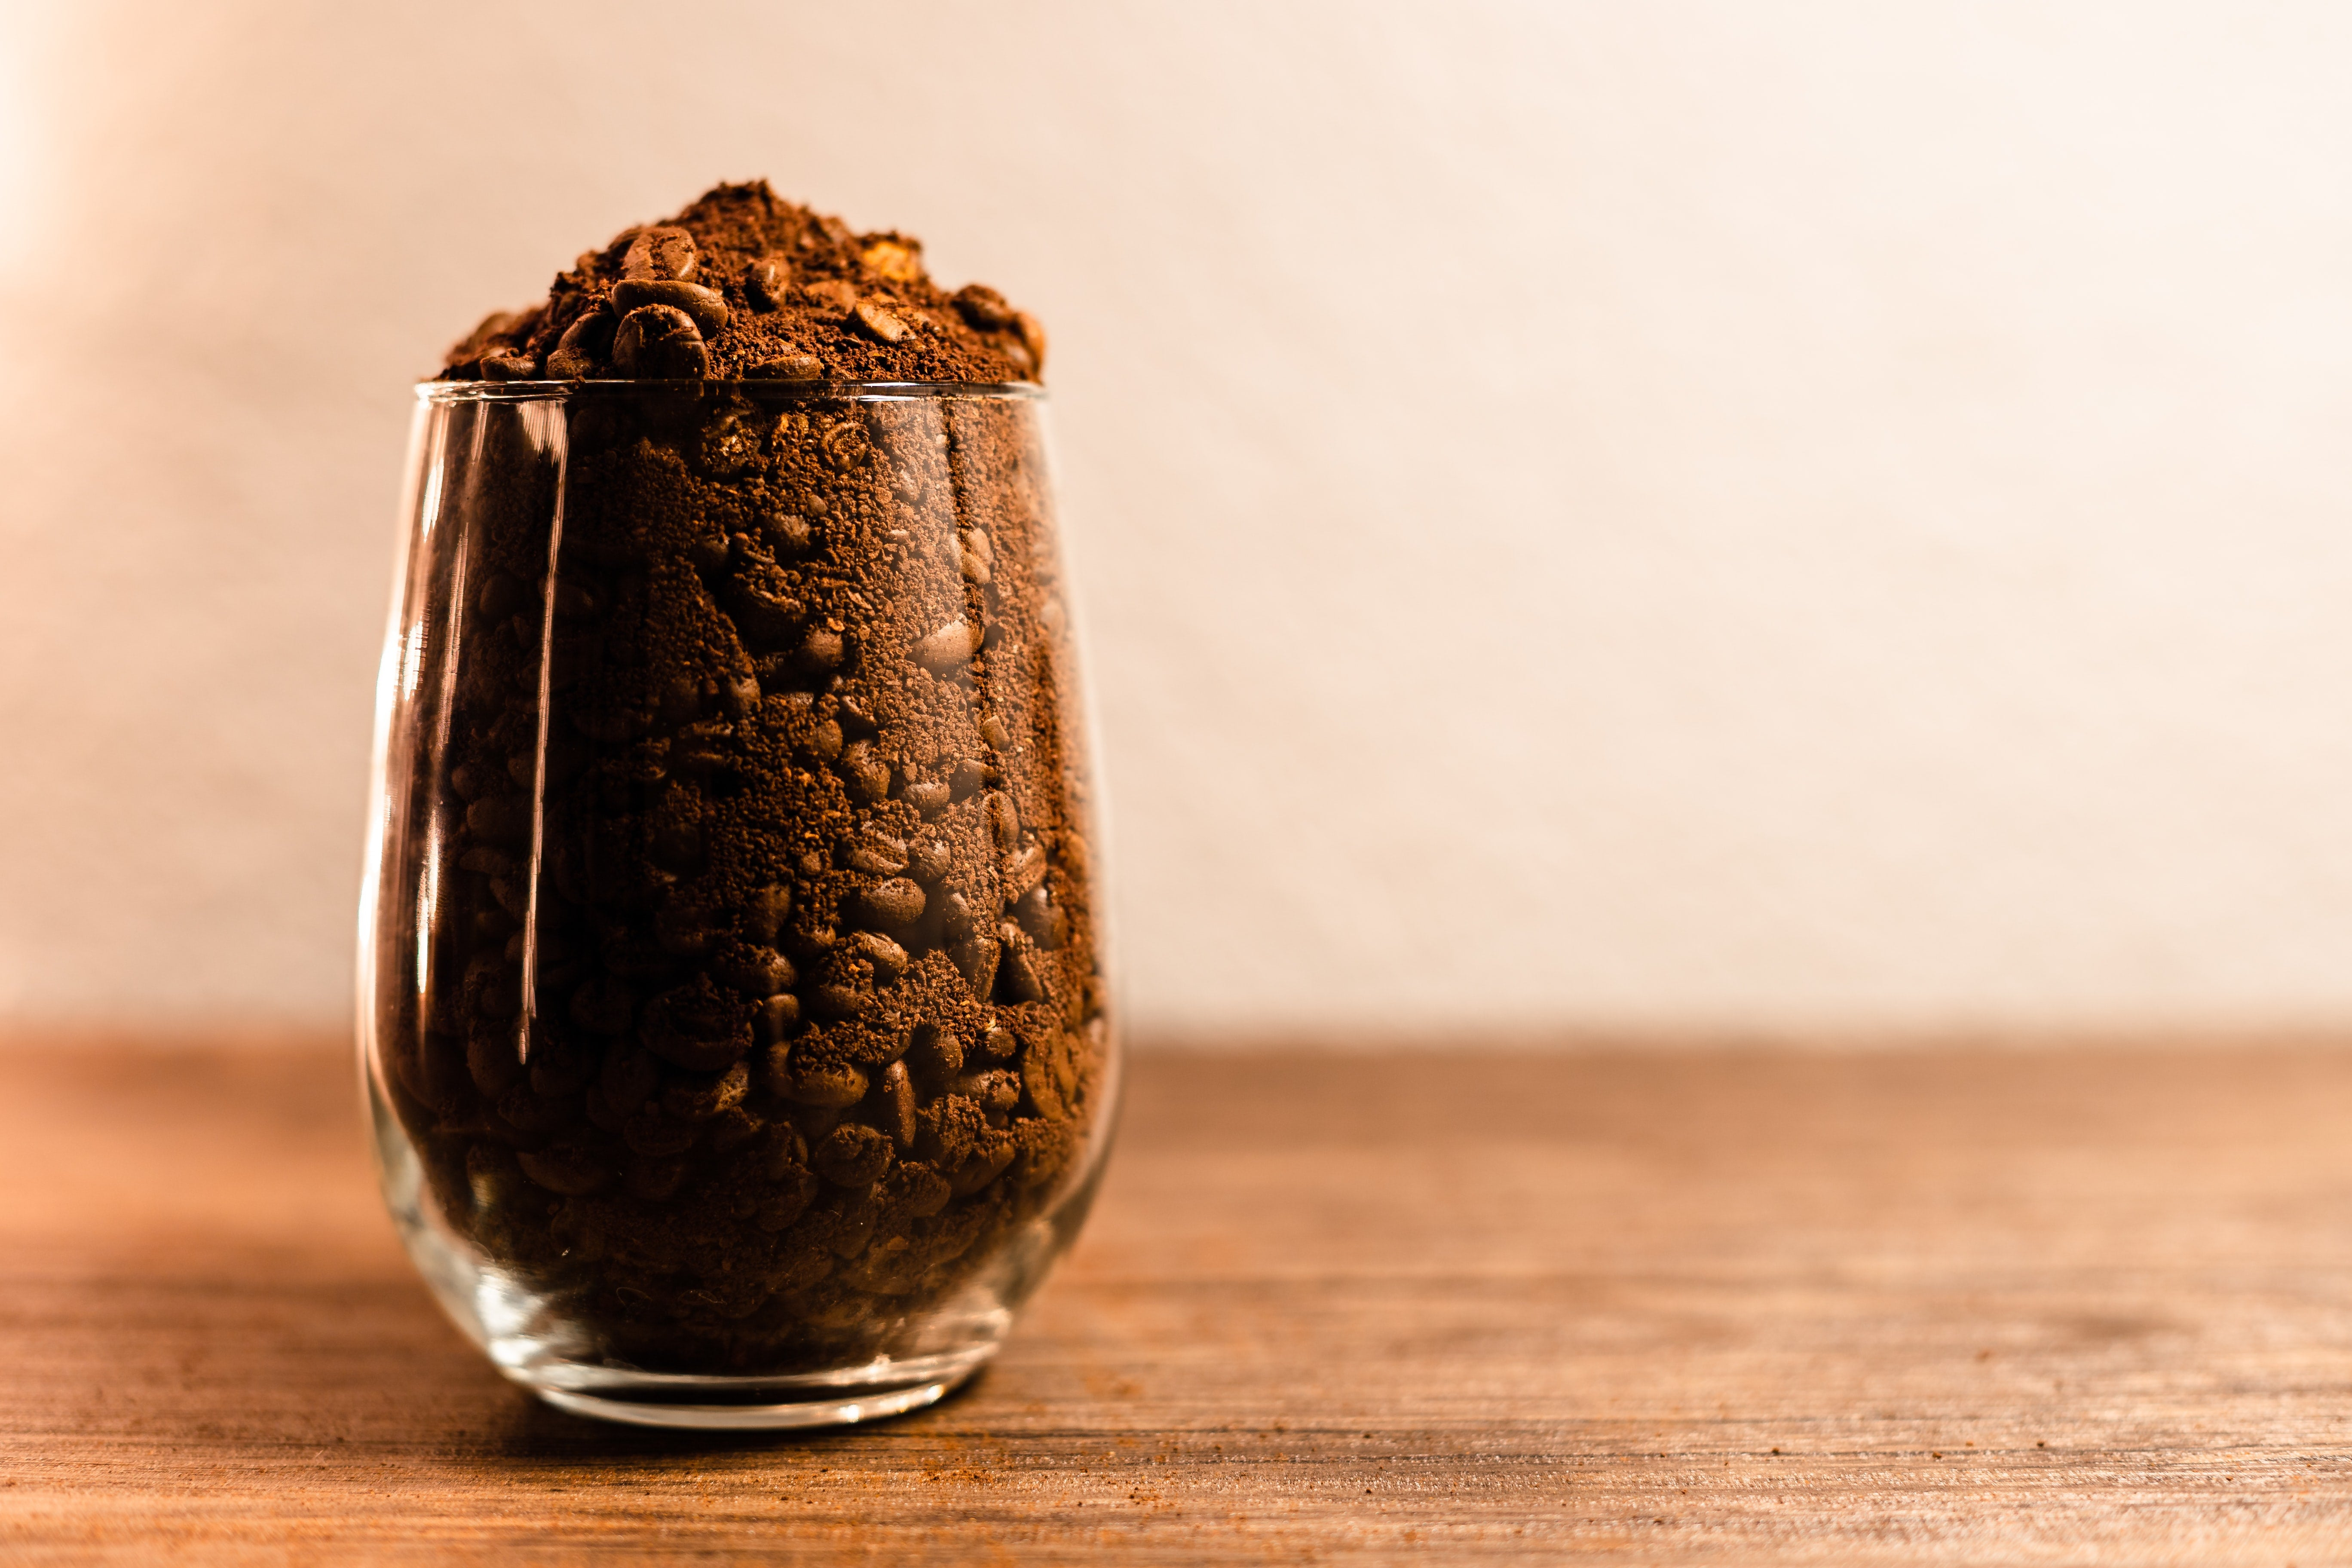 Coffee grounds in a glass